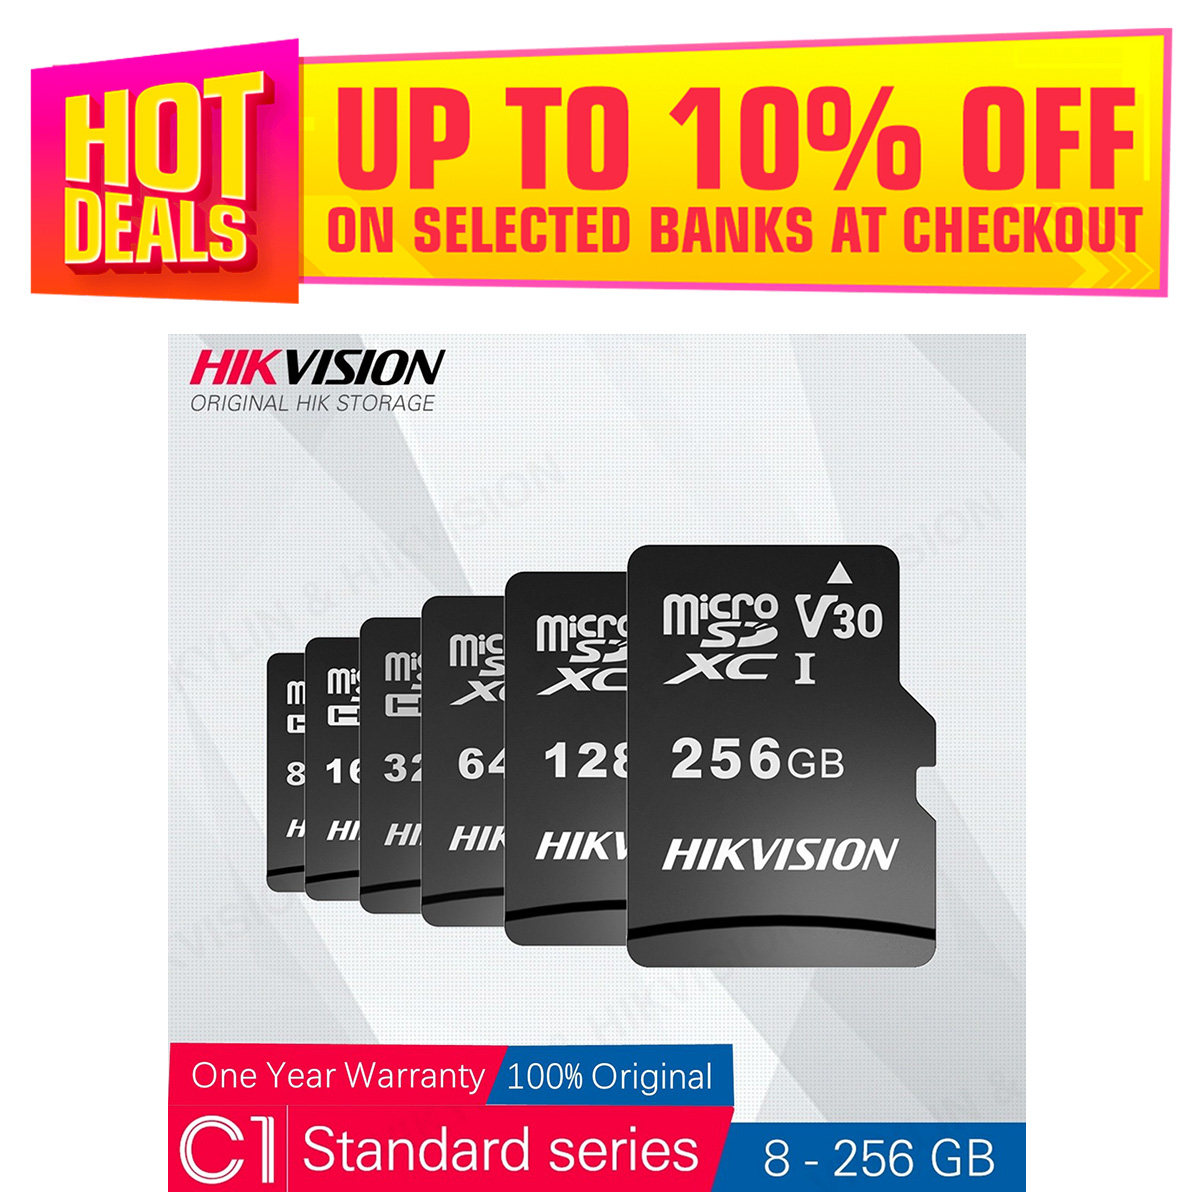 Hikvision 64GB microSD Memory Card W/Adapter HS-TF-C1